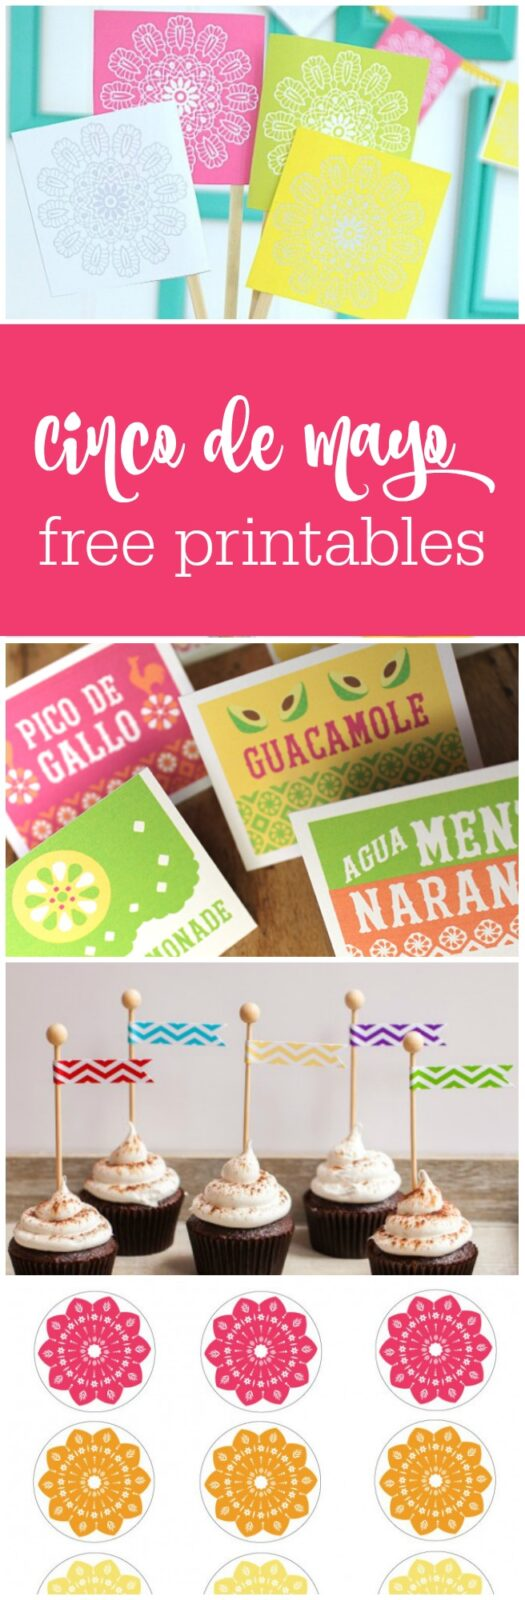 13 free Cinco de Mayo printables curated by The Party Teacher